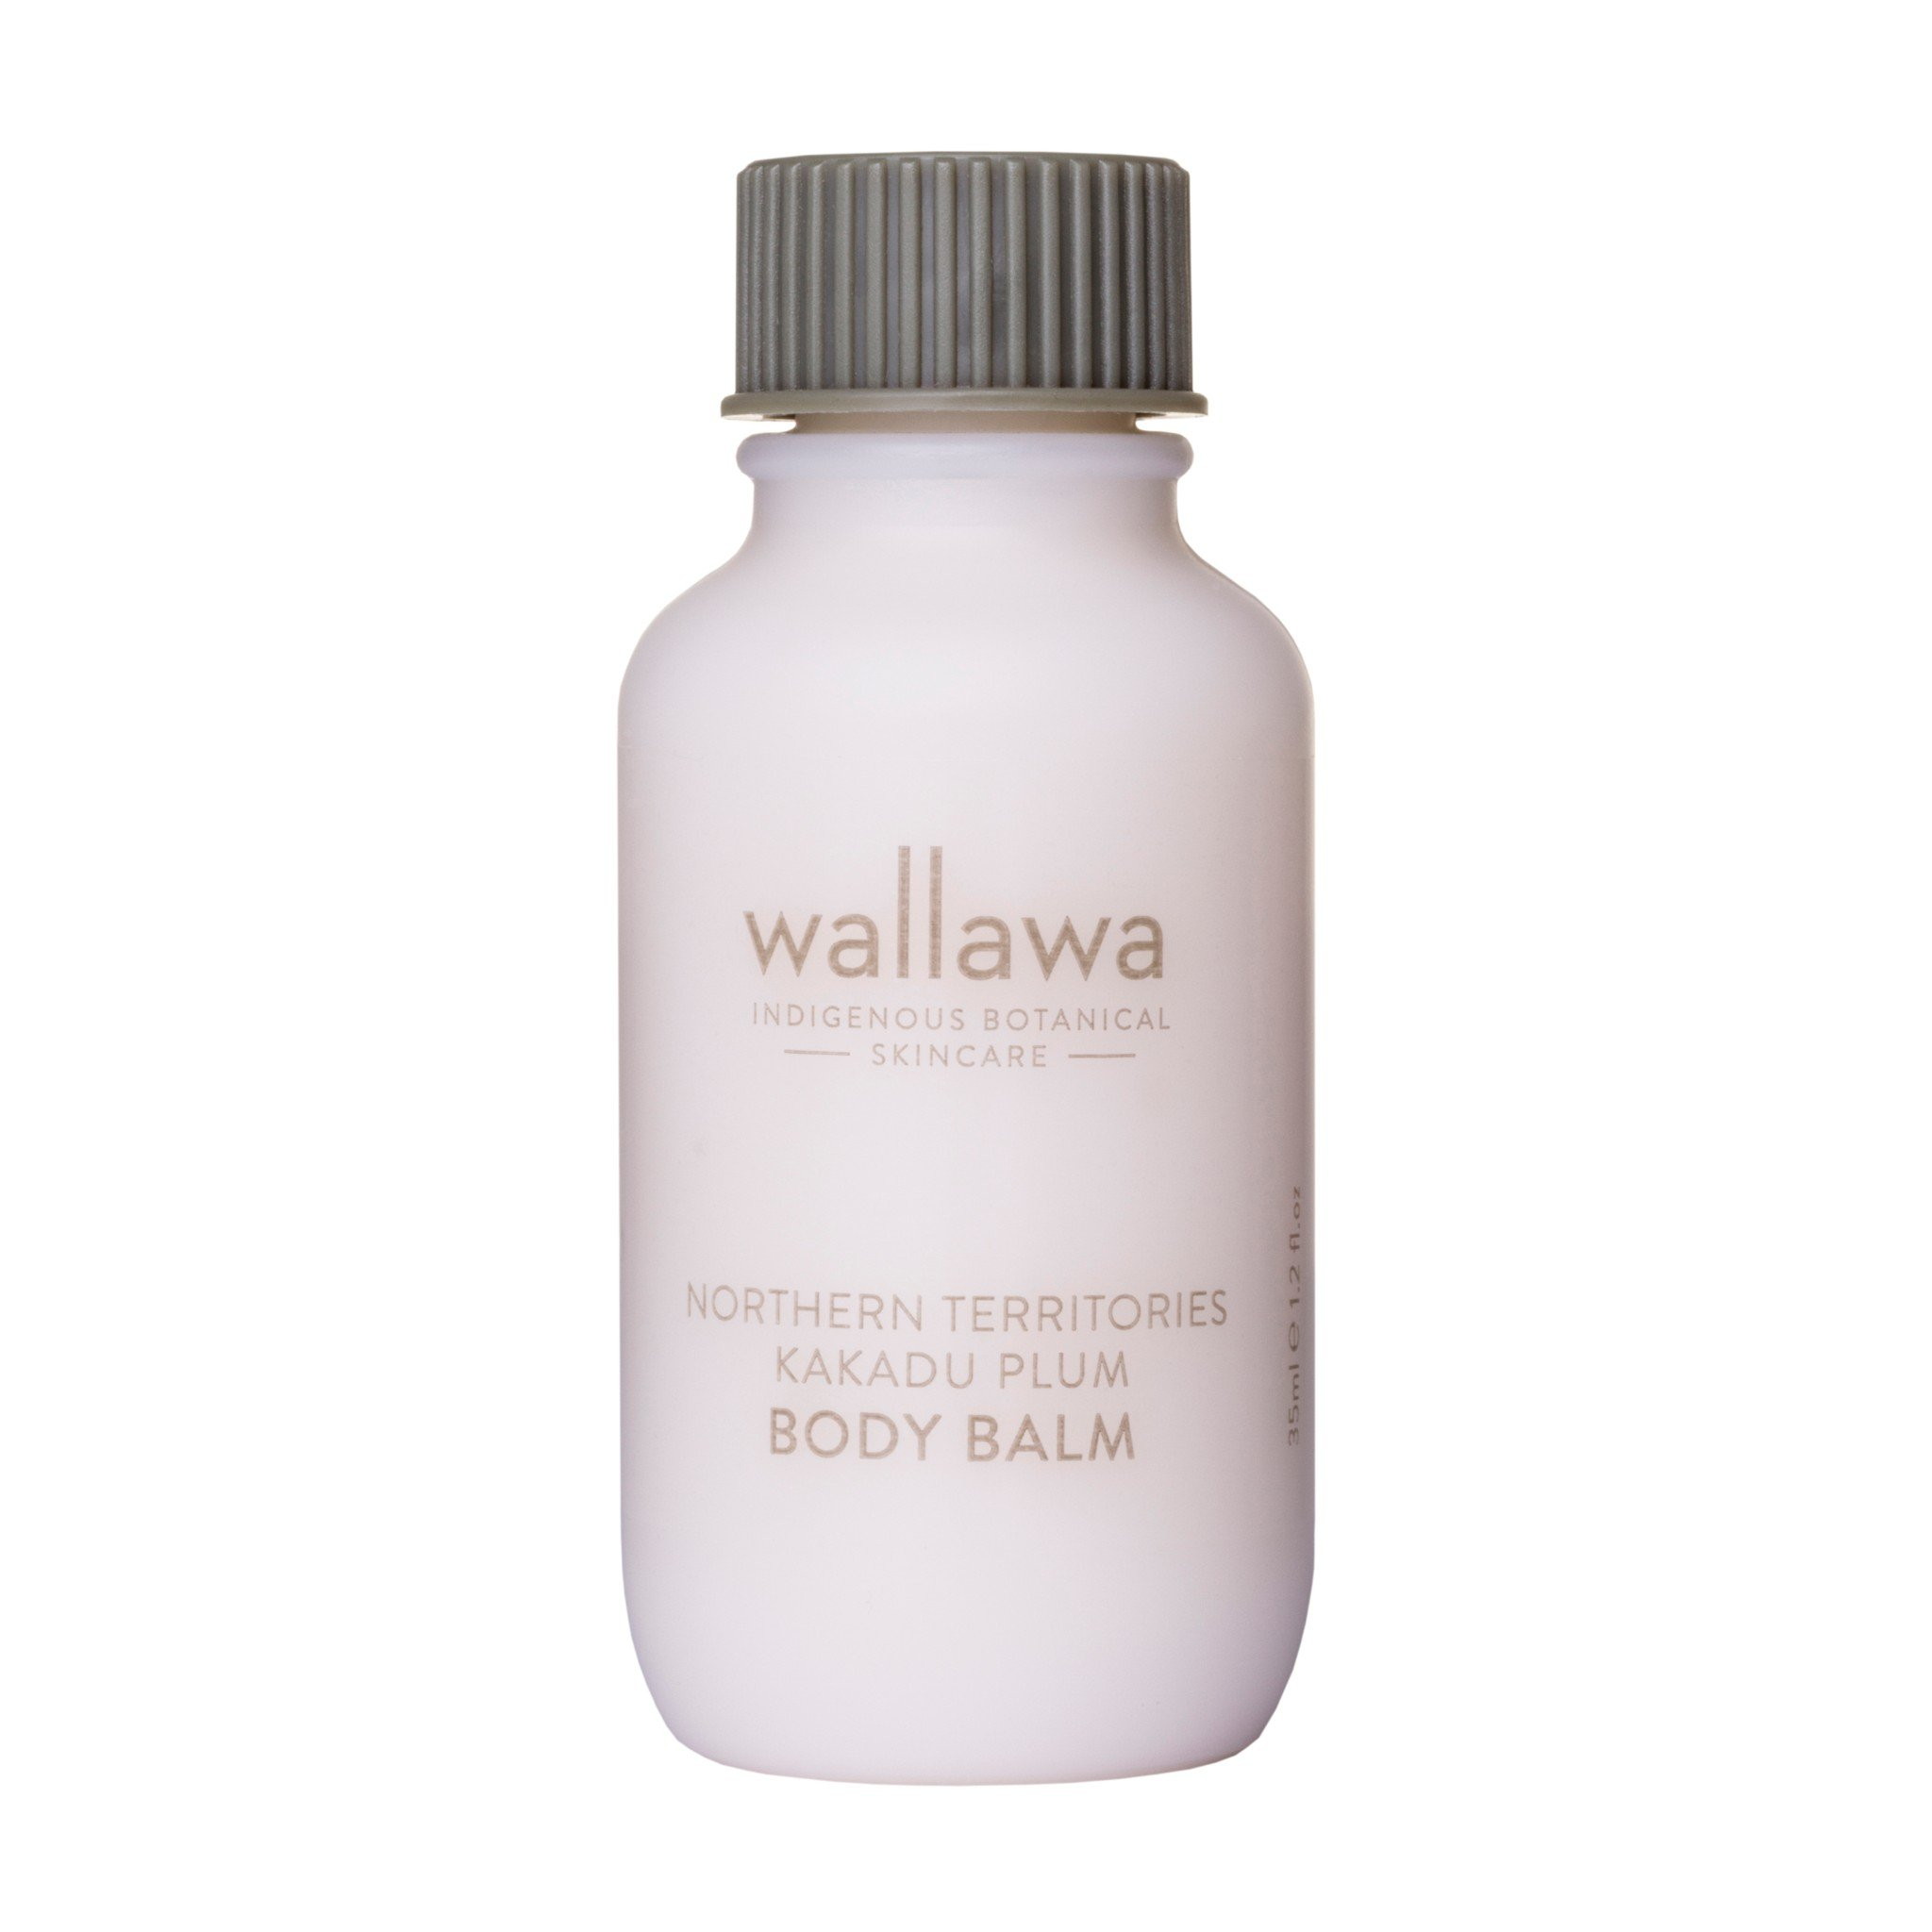 Wallawa Body Balm (324 units)